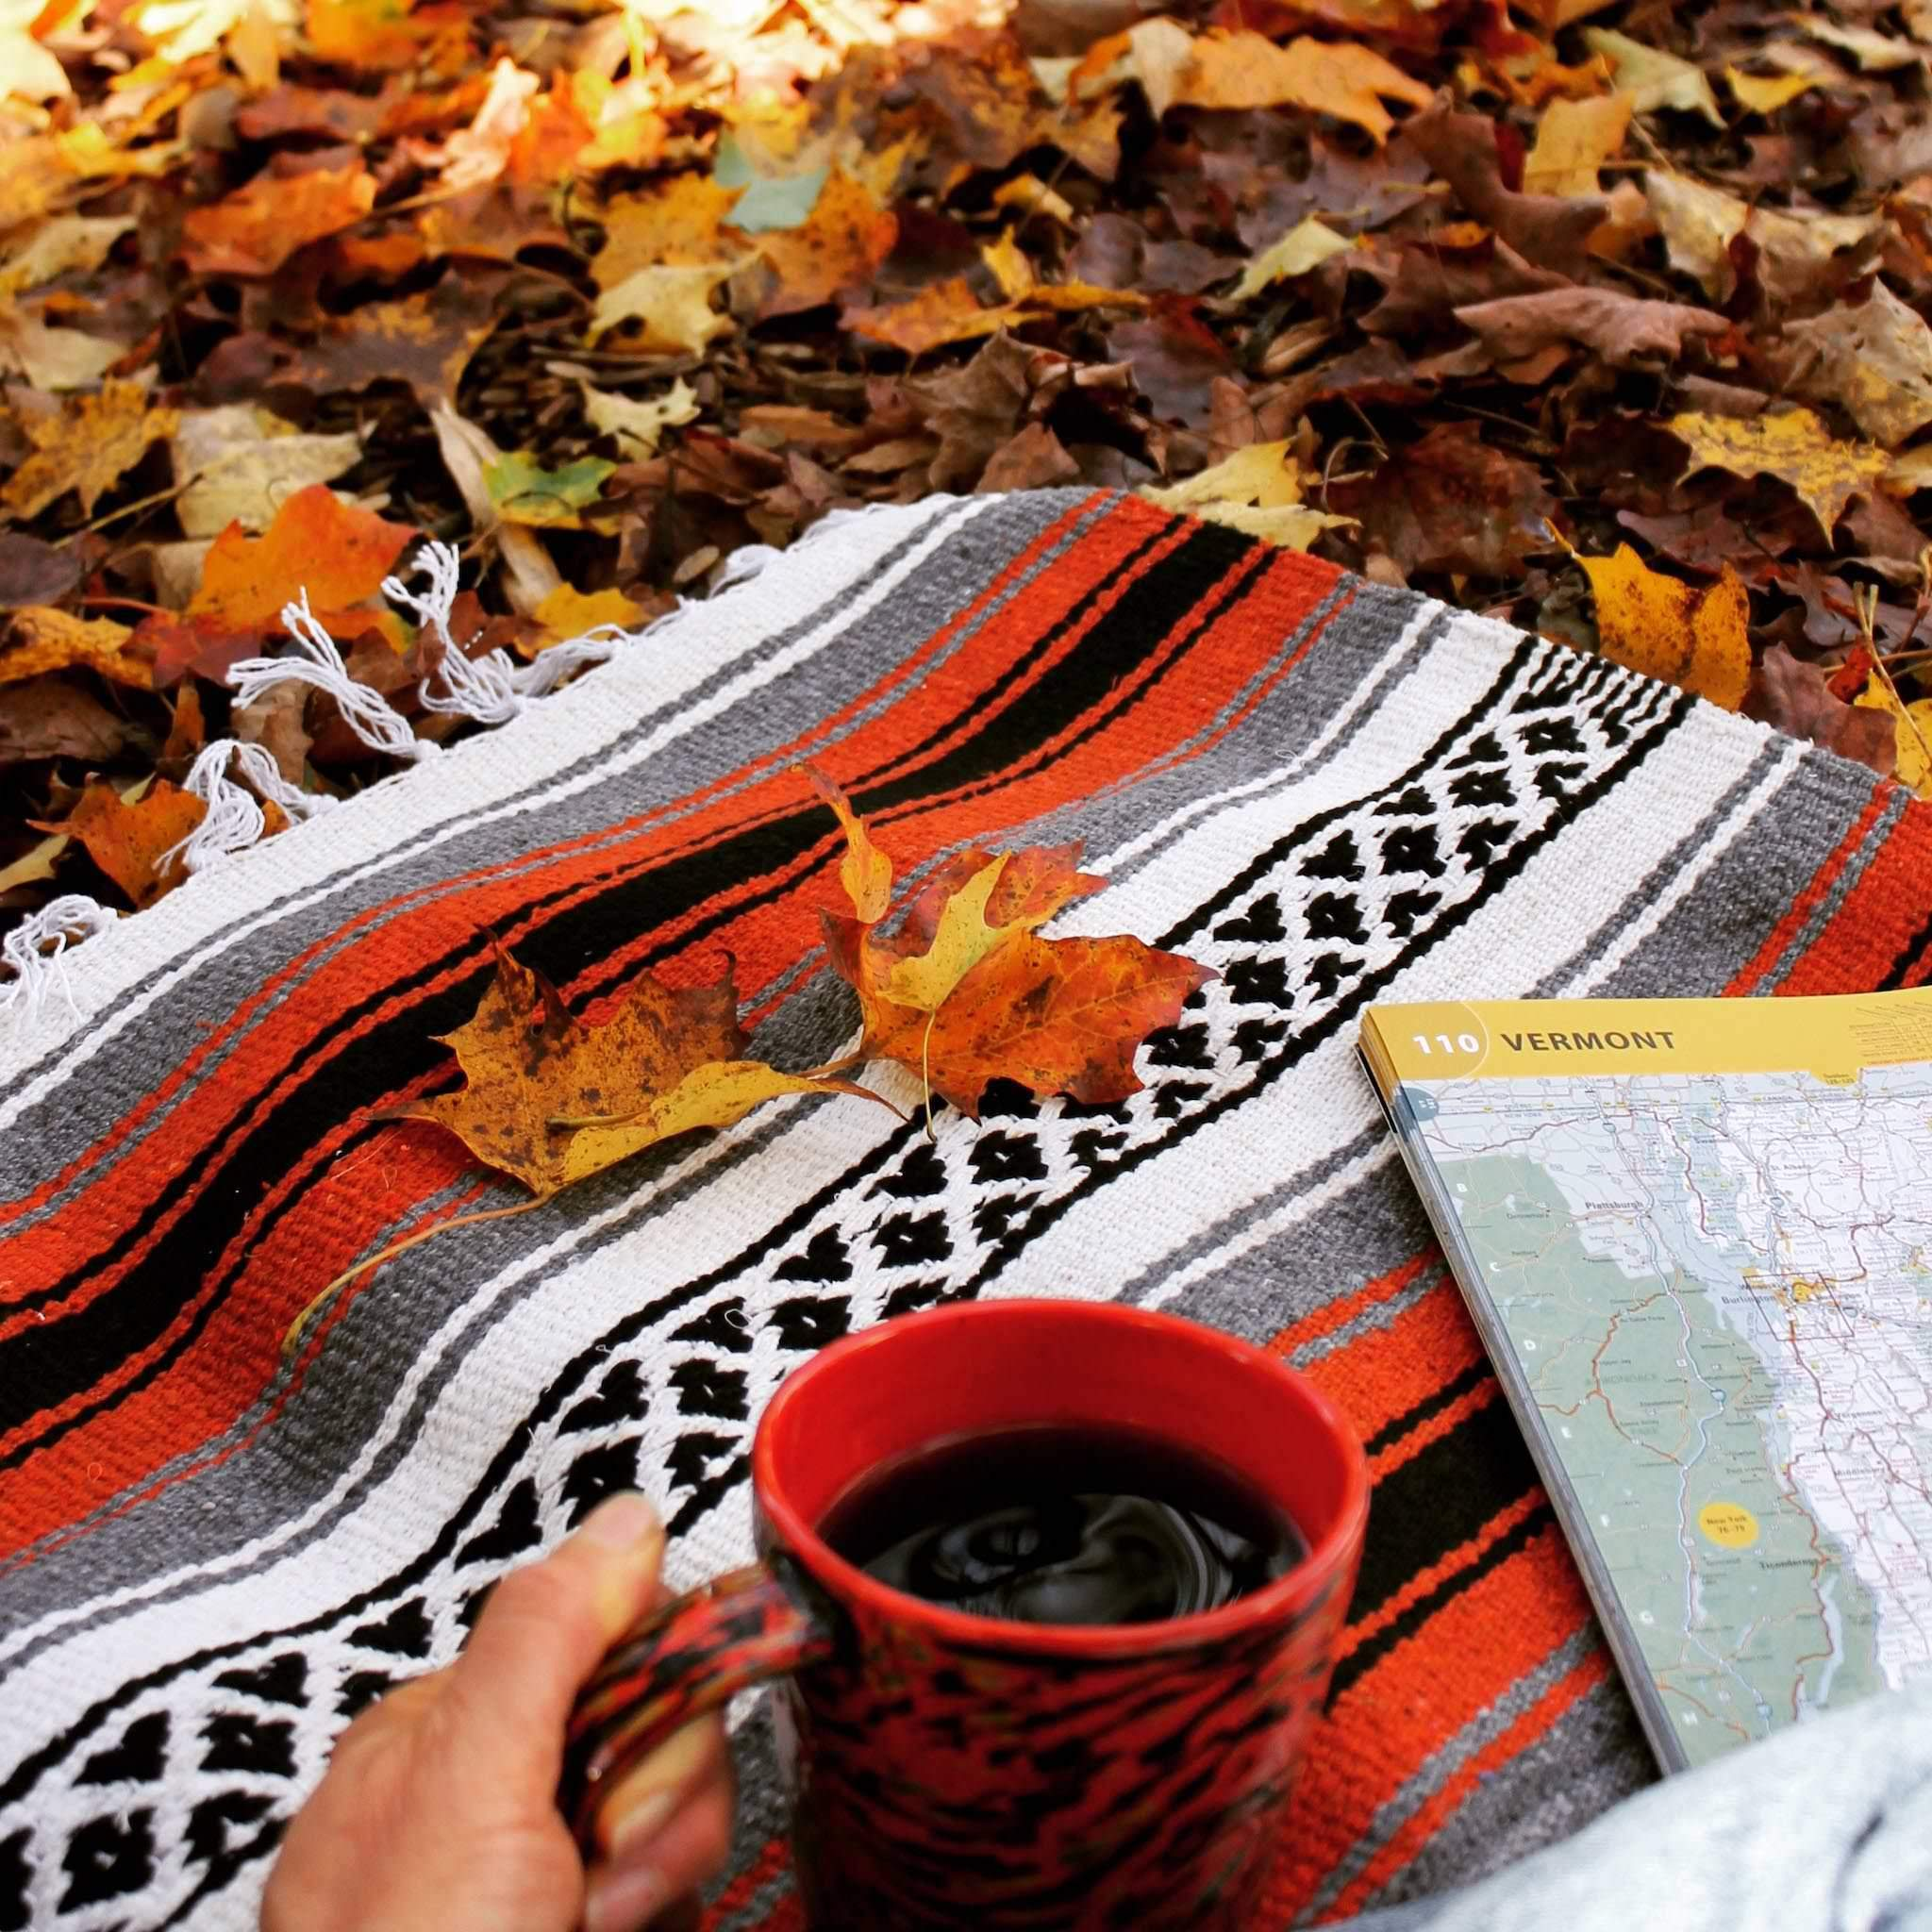 Corner of blanket woven with alternating solid stripes in white, black, grey and rusty orange, and white stripe with pattern of small black diamonds, and white fringed edge, lying on ground covered with yellow and brown fallen leaves, with hand holding an orange ceramic cup full of coffee and corner of map of Vermont resting on blanket.